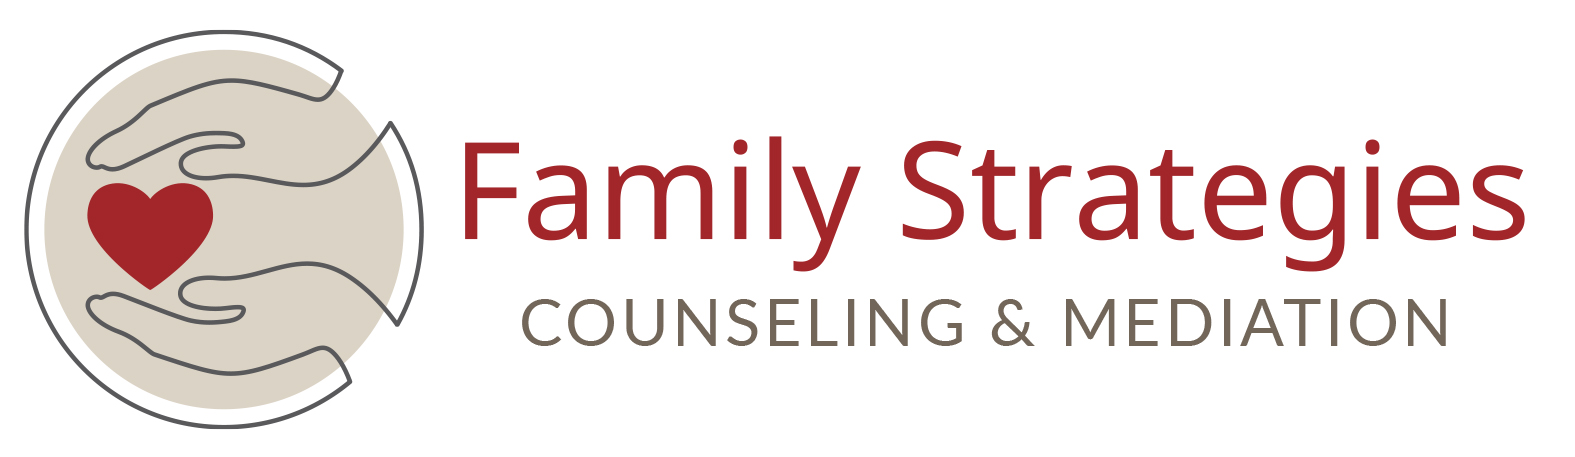 Family Strategies Counseling & Mediation